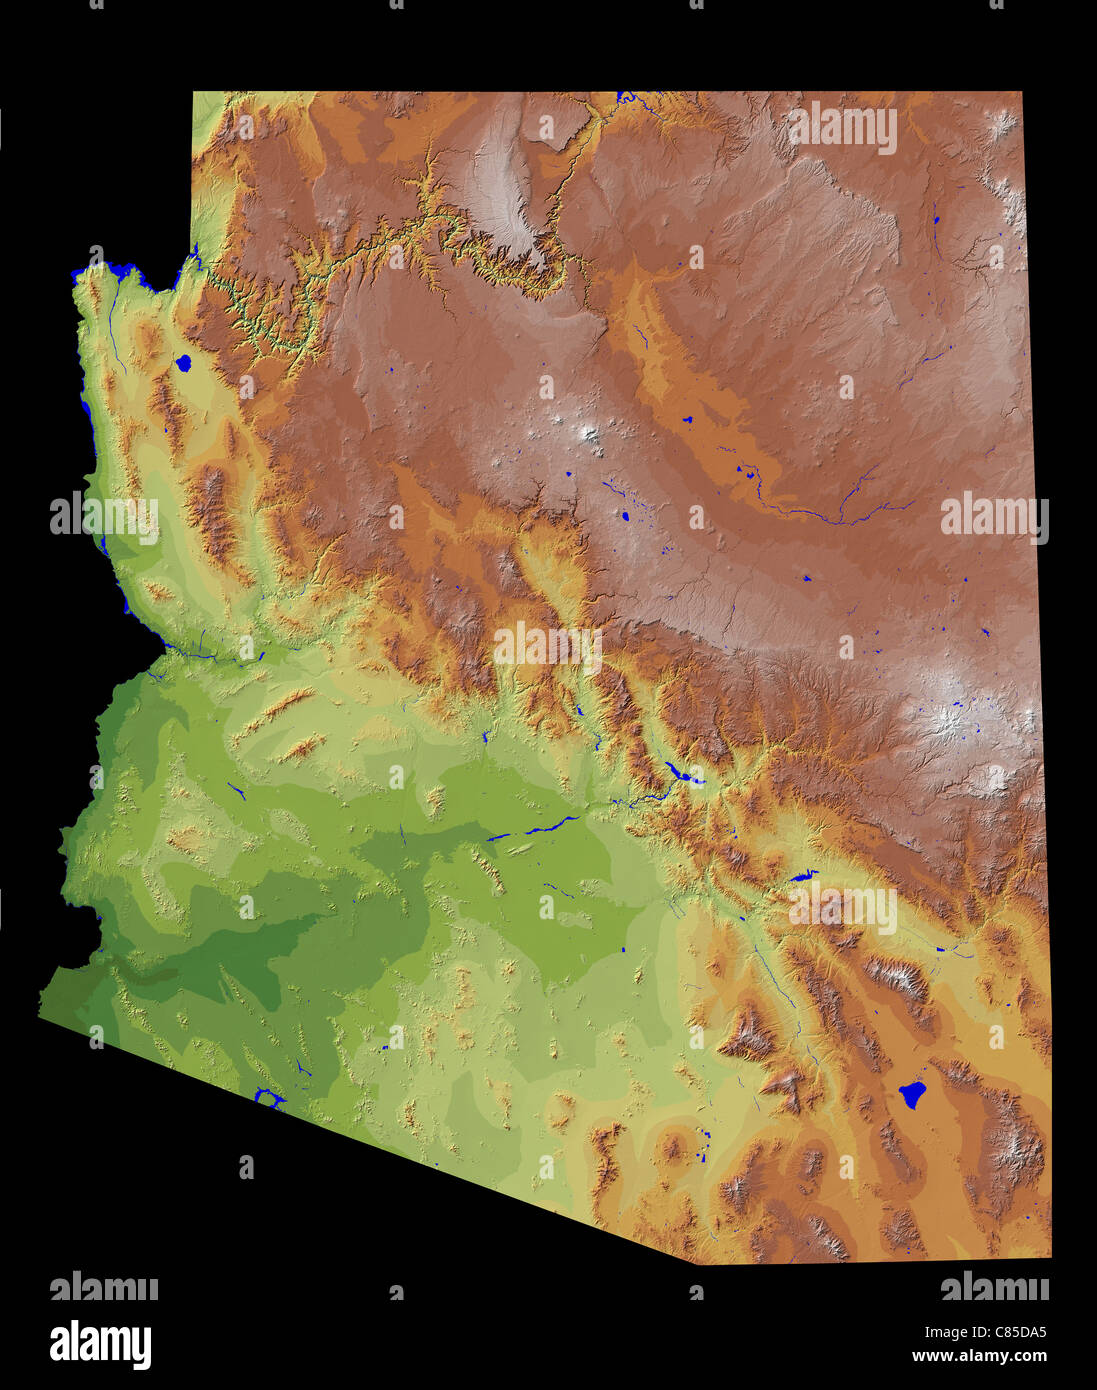 Shaded Relief Images of specific areas (generally by state) have been selected from the National Elevation Dataset. - Stock Image